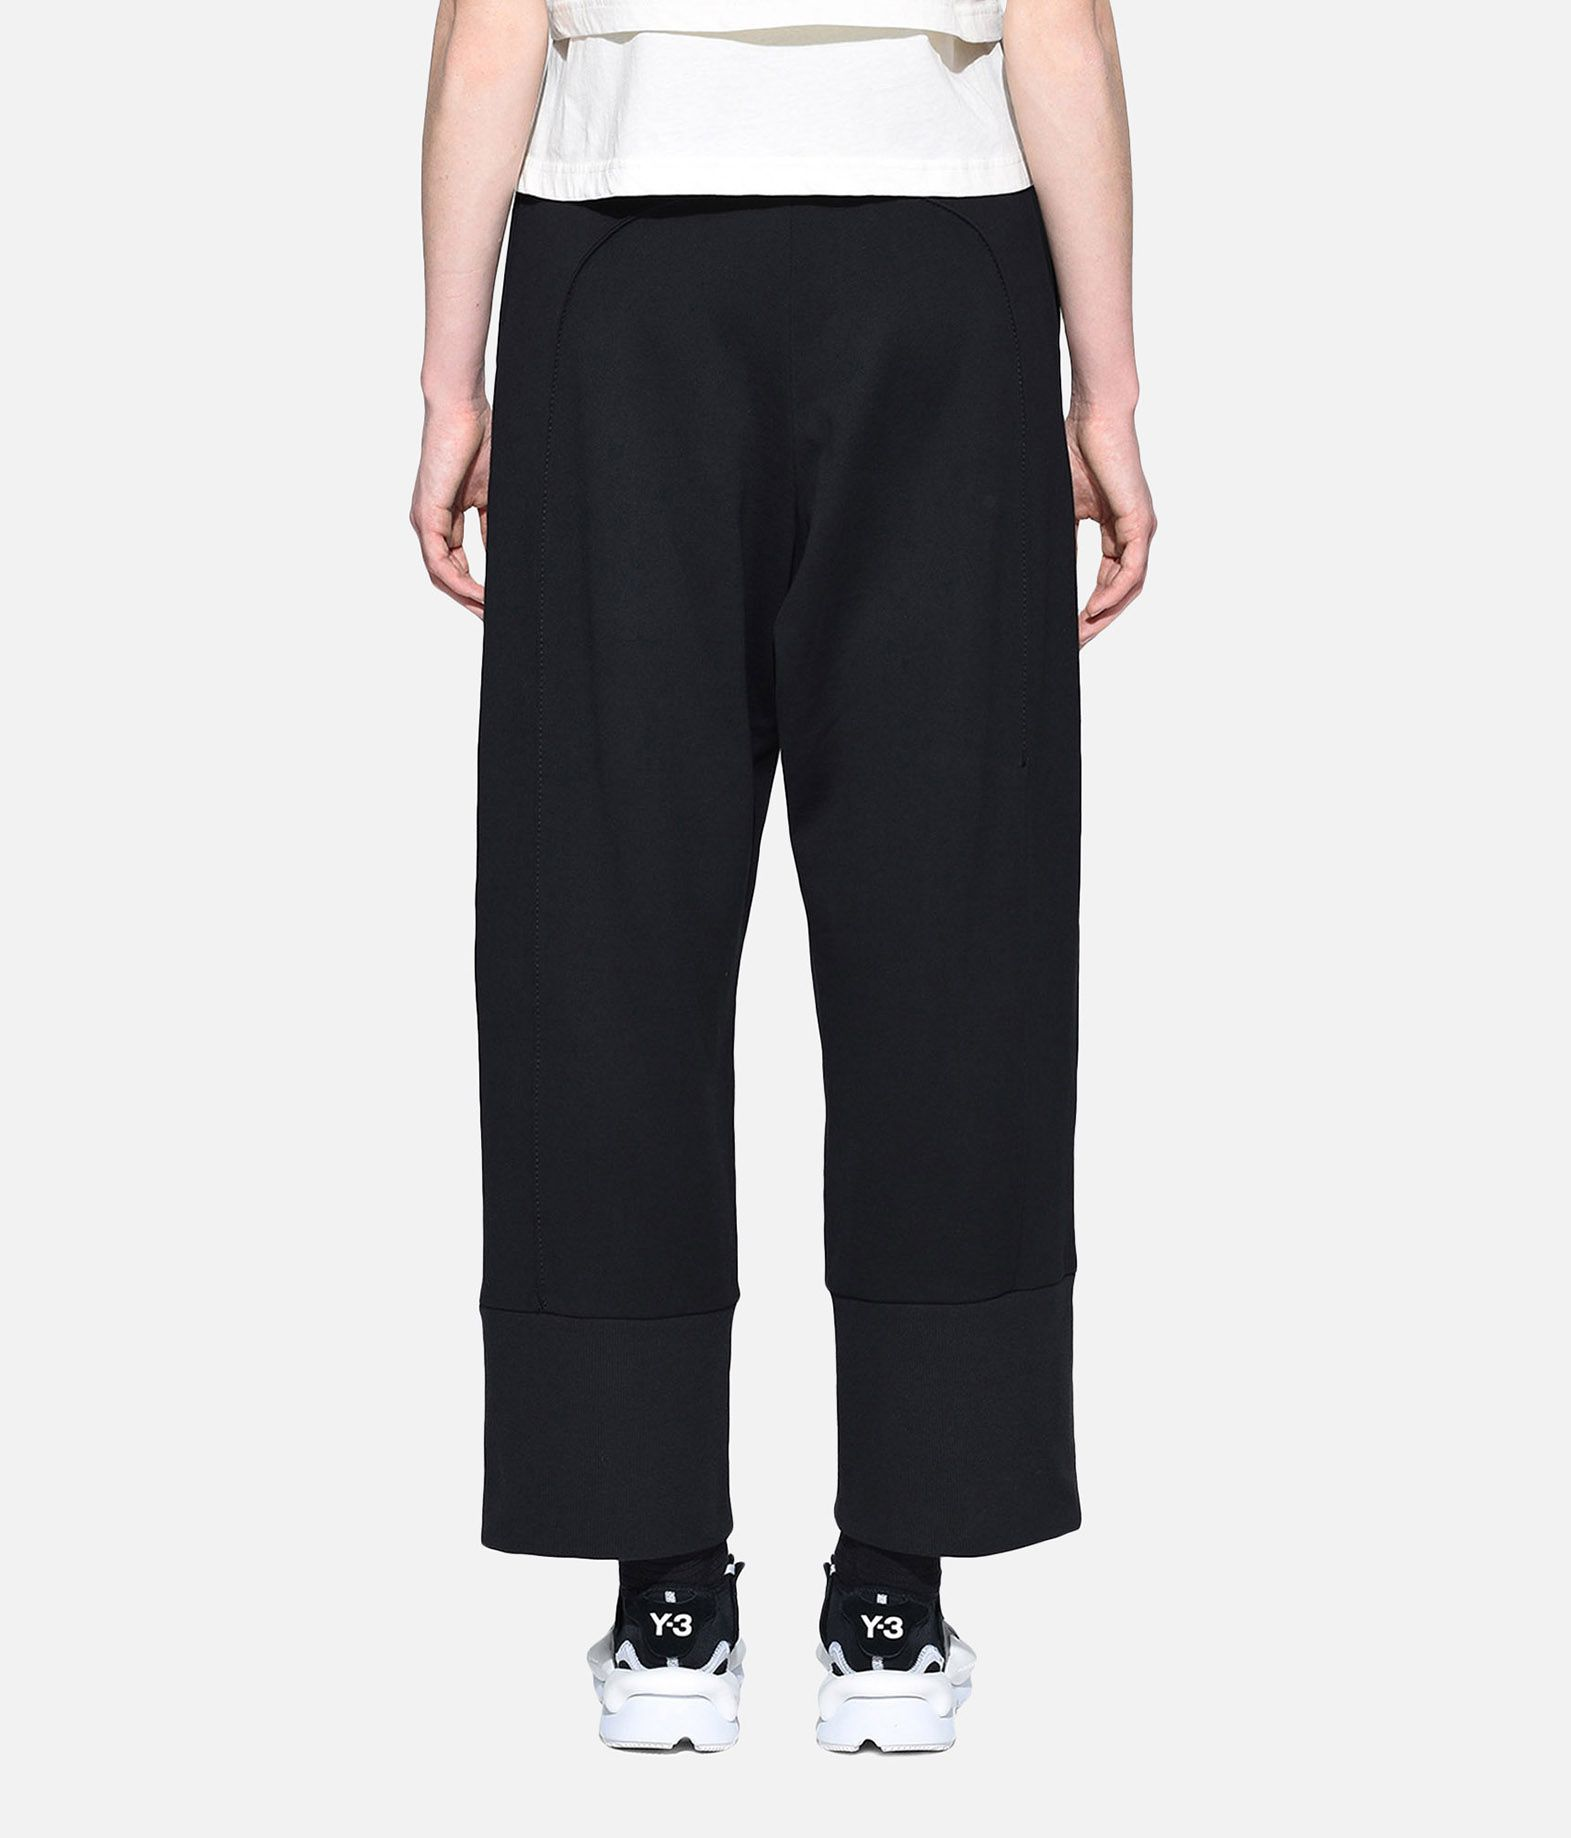 Y-3 Y-3 Sashiko Pants Casual pants Woman d